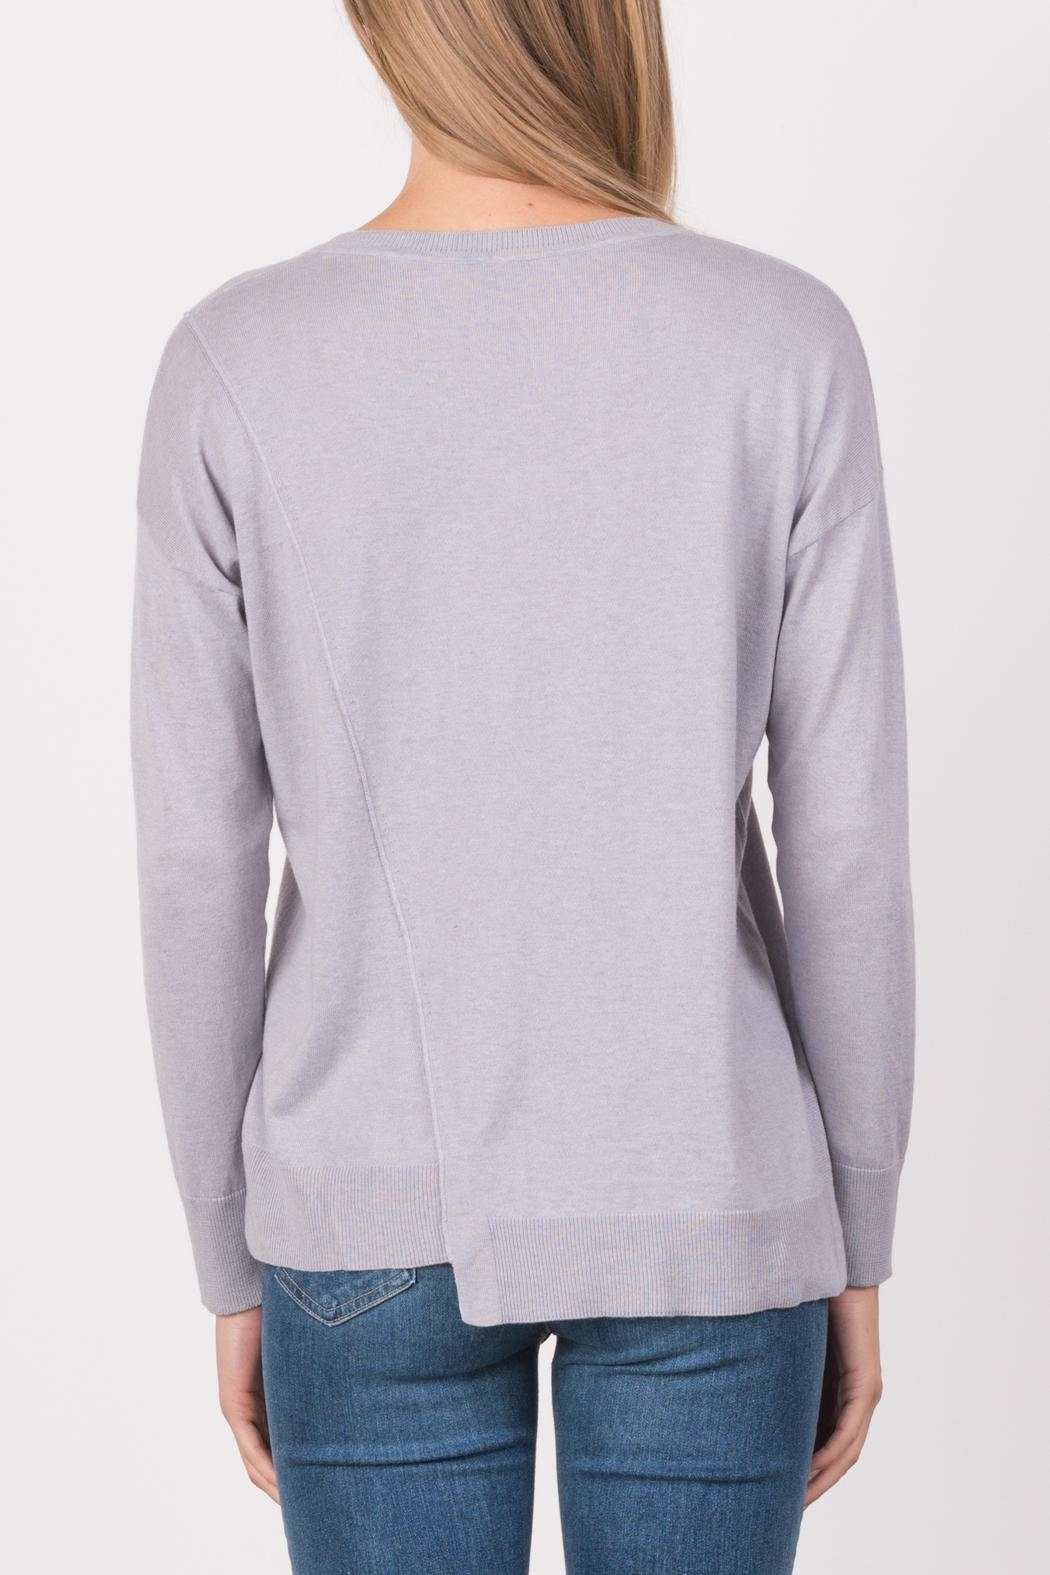 Margaret O'Leary Exie Scoop Pullover - Side Cropped Image